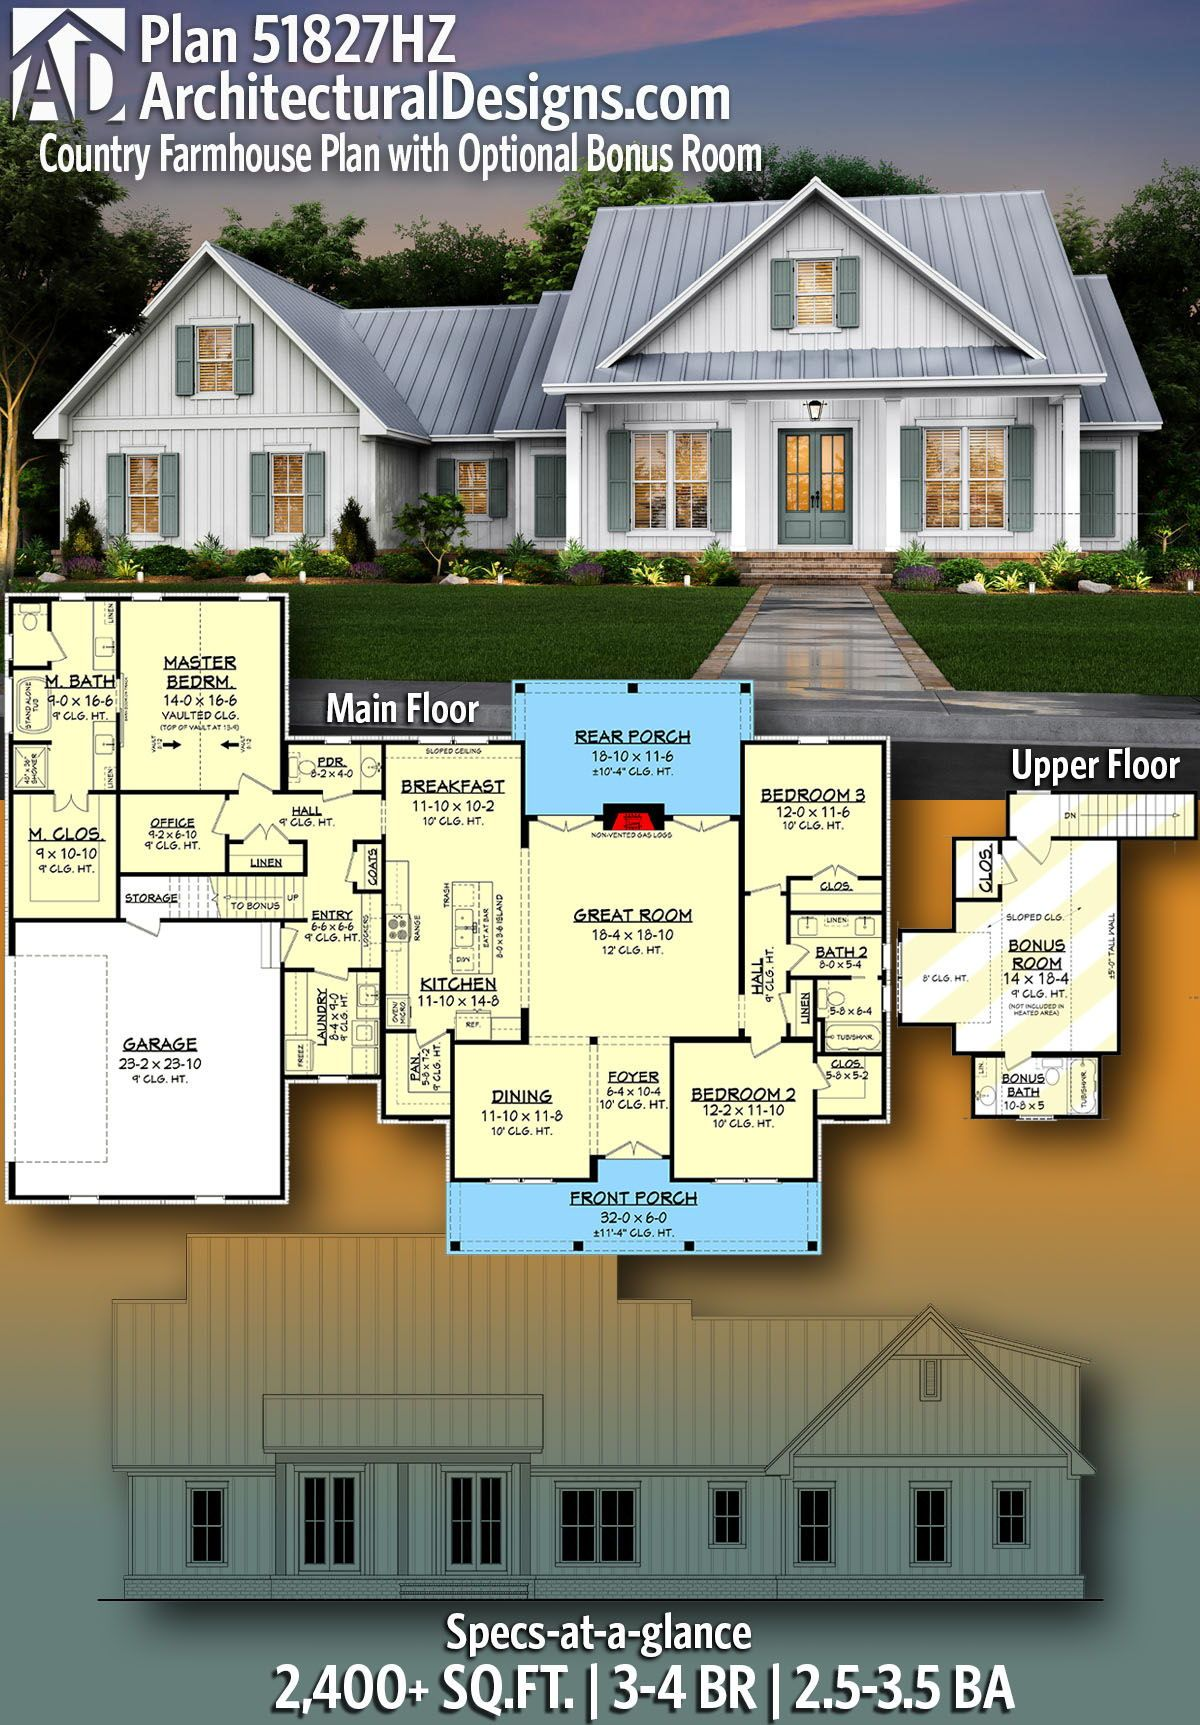 Plan 51827hz Country Farmhouse Plan With Optional Bonus Room In 2020 Farmhouse Plans Country Farmhouse New House Plans